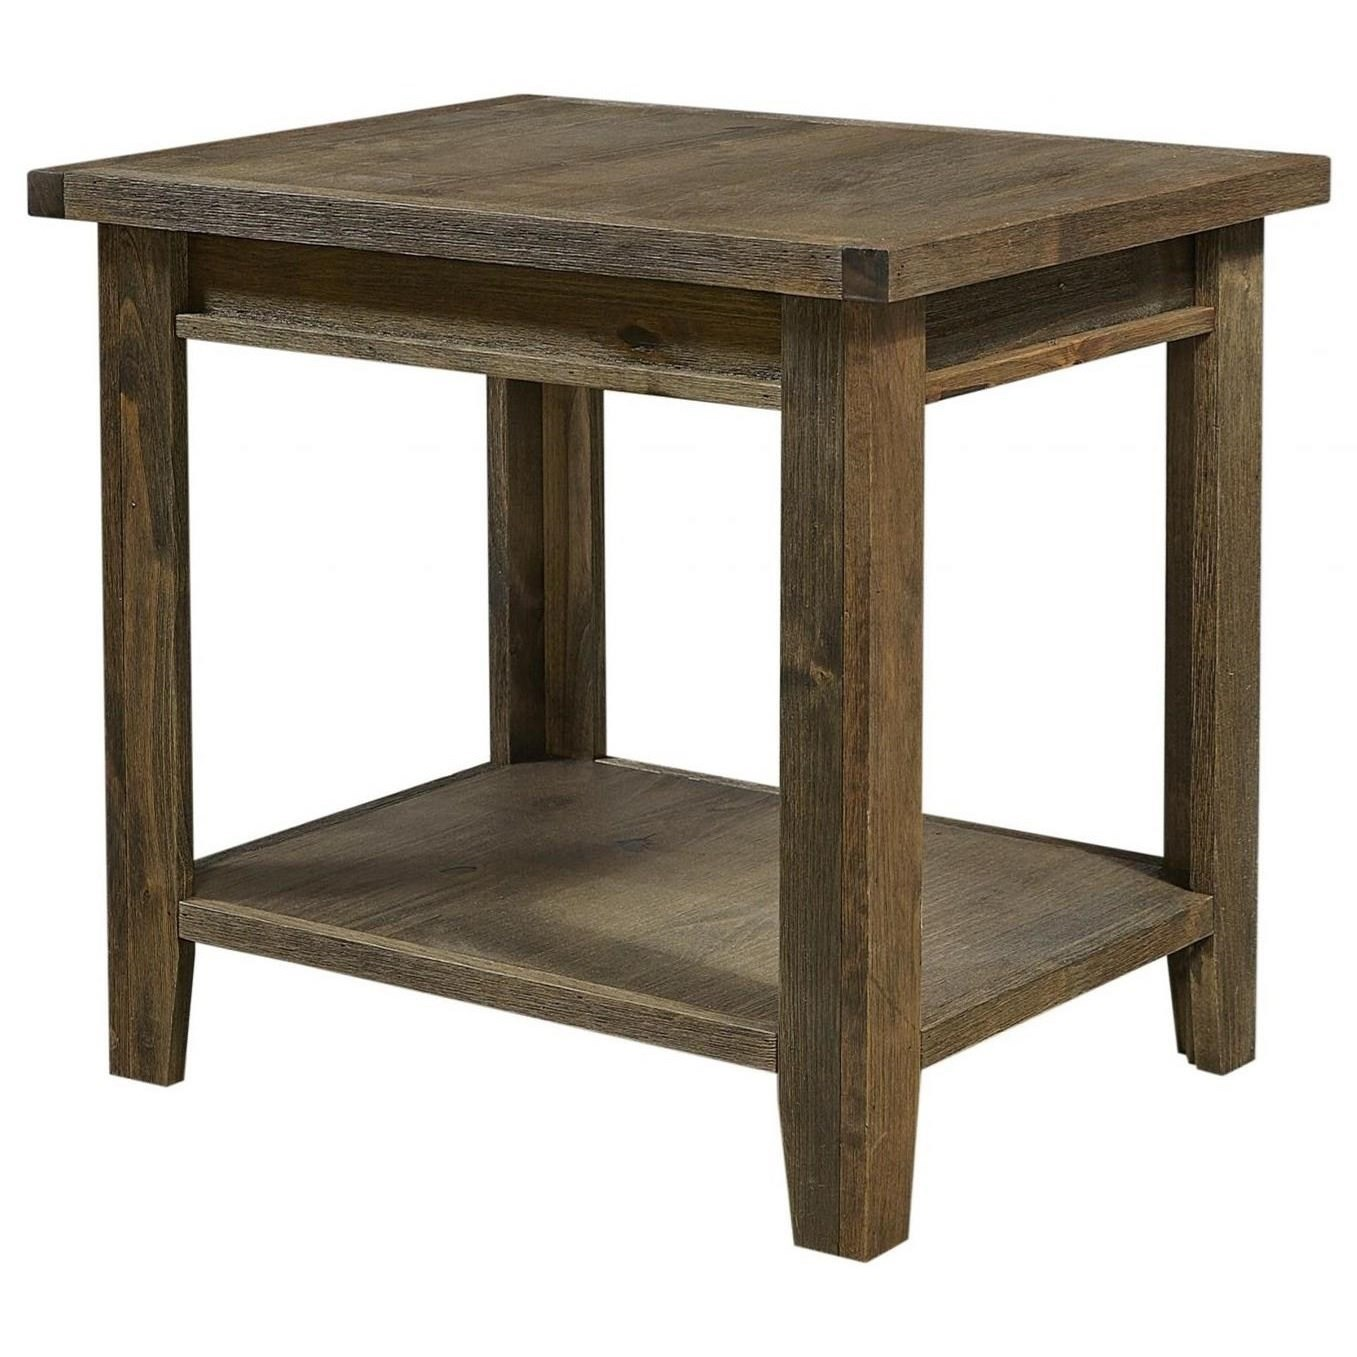 Alder Grove End Table by Aspenhome at Stoney Creek Furniture